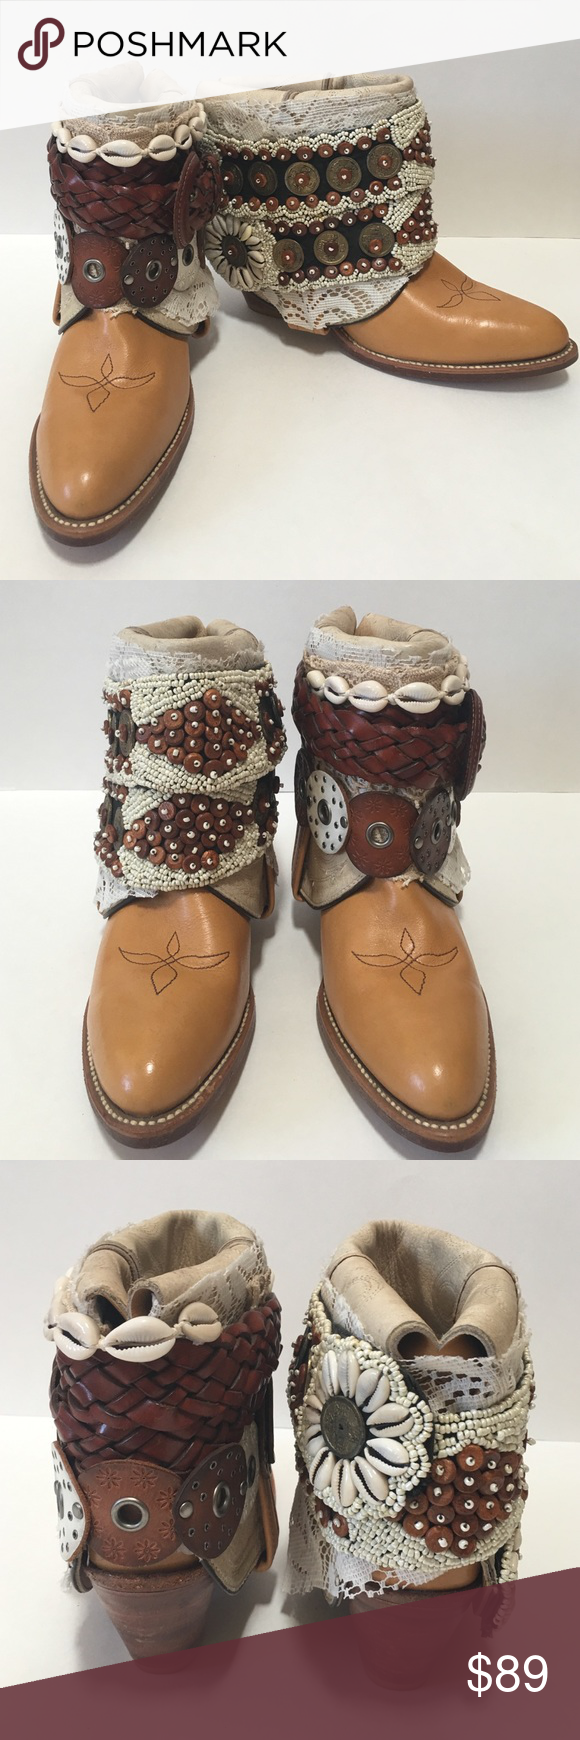 Western Boho Belted Boots (like Free People) Bohemian boho belted embellished boots perfect for festival wear! These boots are one of a kind. In excellent condition, like new, these are a must for any fashionista. Shoes Ankle Boots & Booties